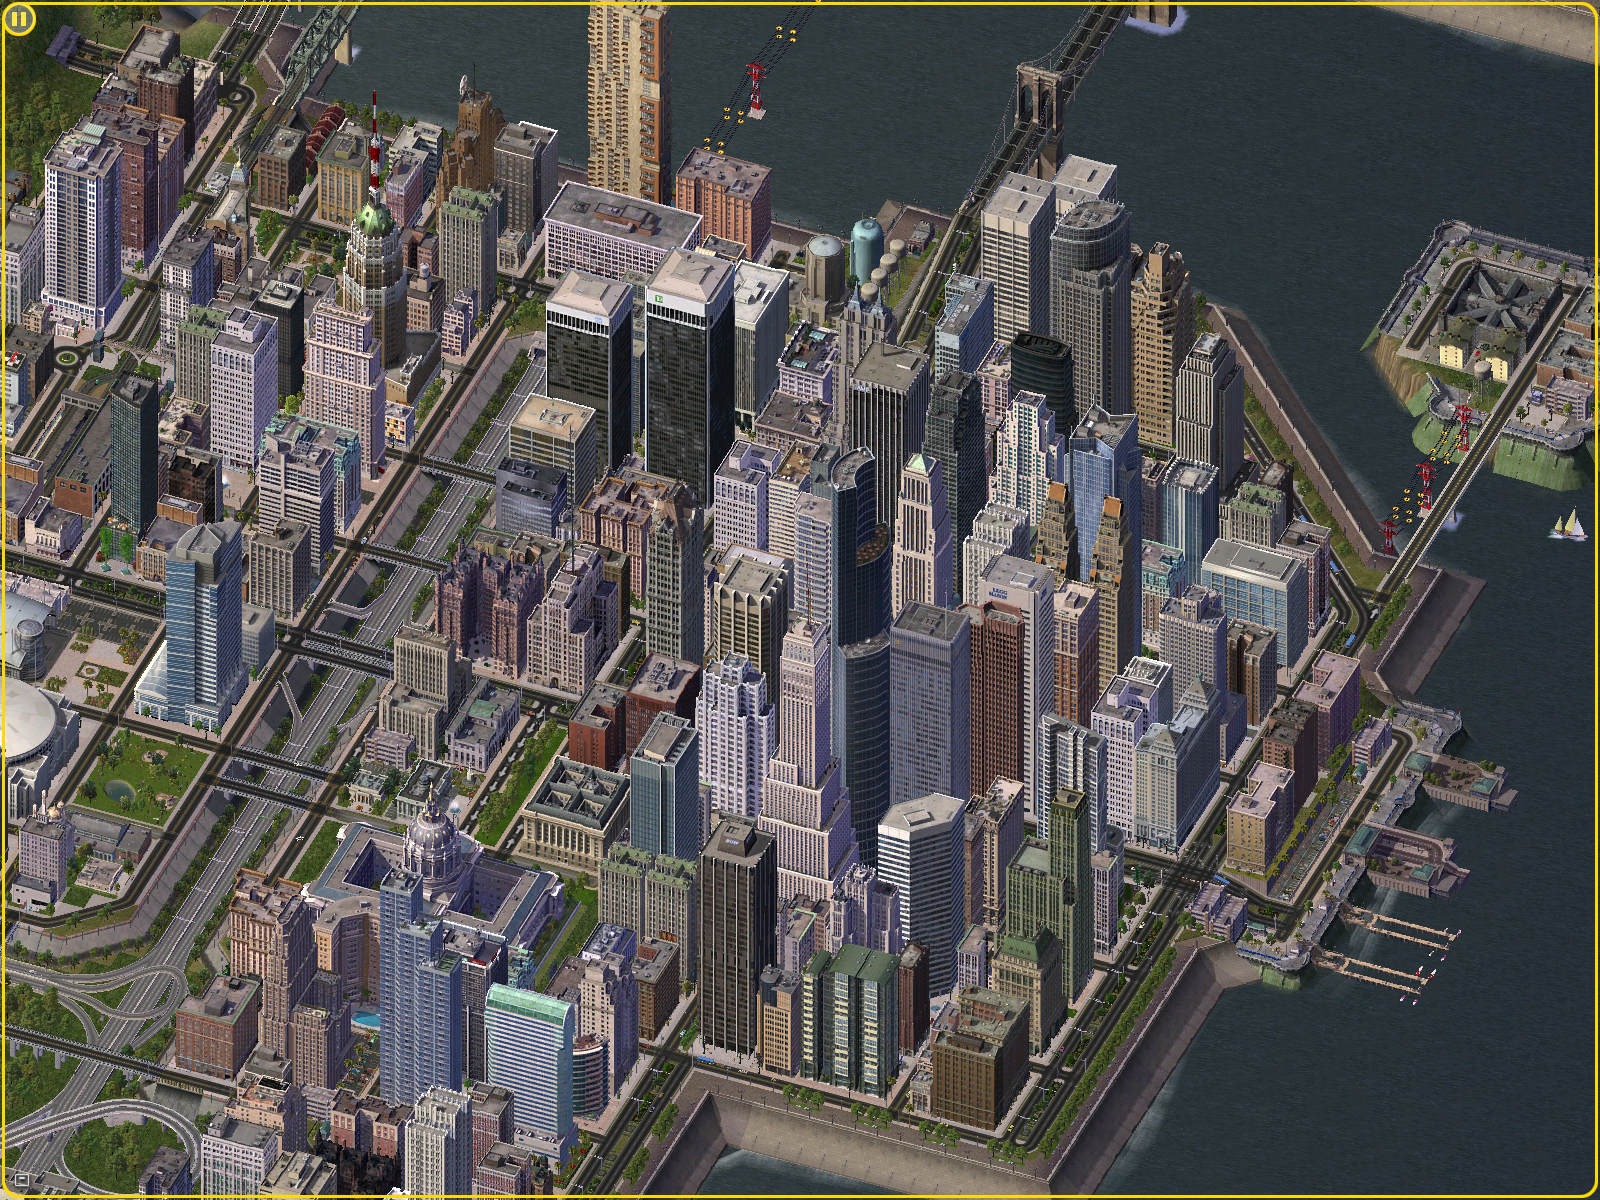 SimCity 4 Deluxe Edition PC Game : Sim City - EA Game